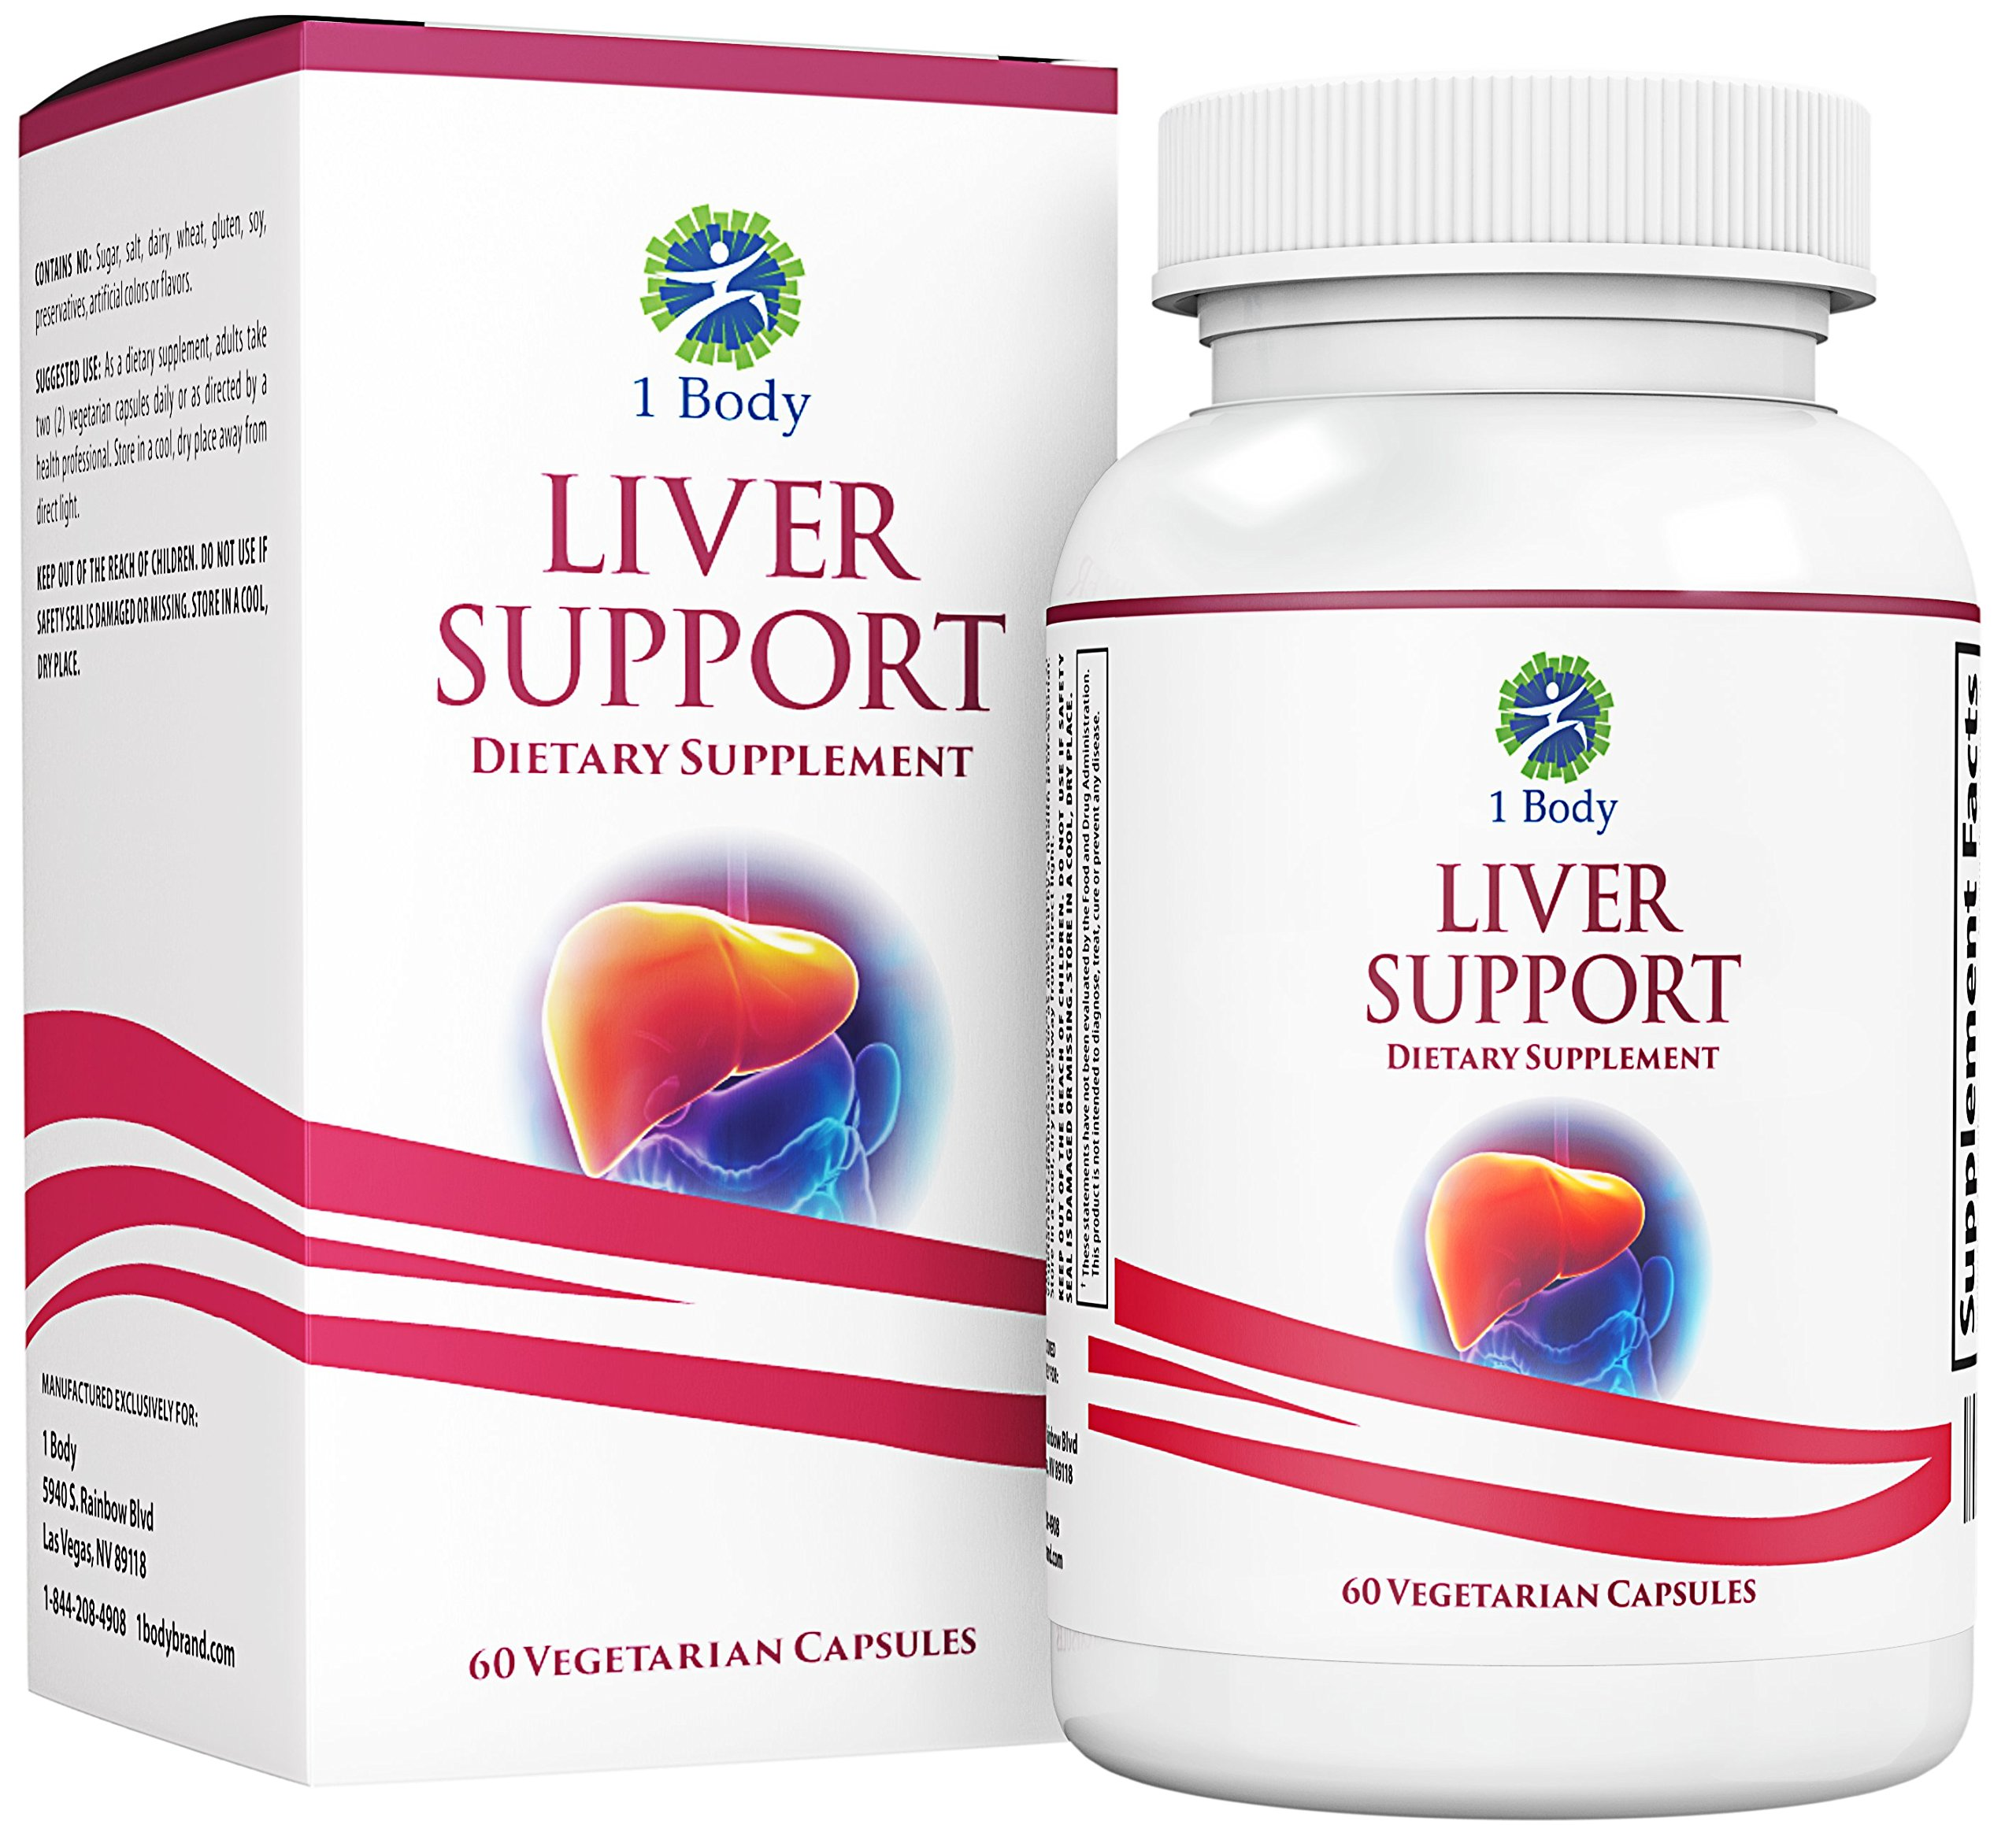 Liver Cleanse and Support Supplement - Milk Thistle Extract (Silymarin), Turmeric Curcumin, Dandelion Root, Artichoke, N Acetyl L Cysteine, Vitamin B12 and More in 2 Vegetarian Capsules by 1 Body